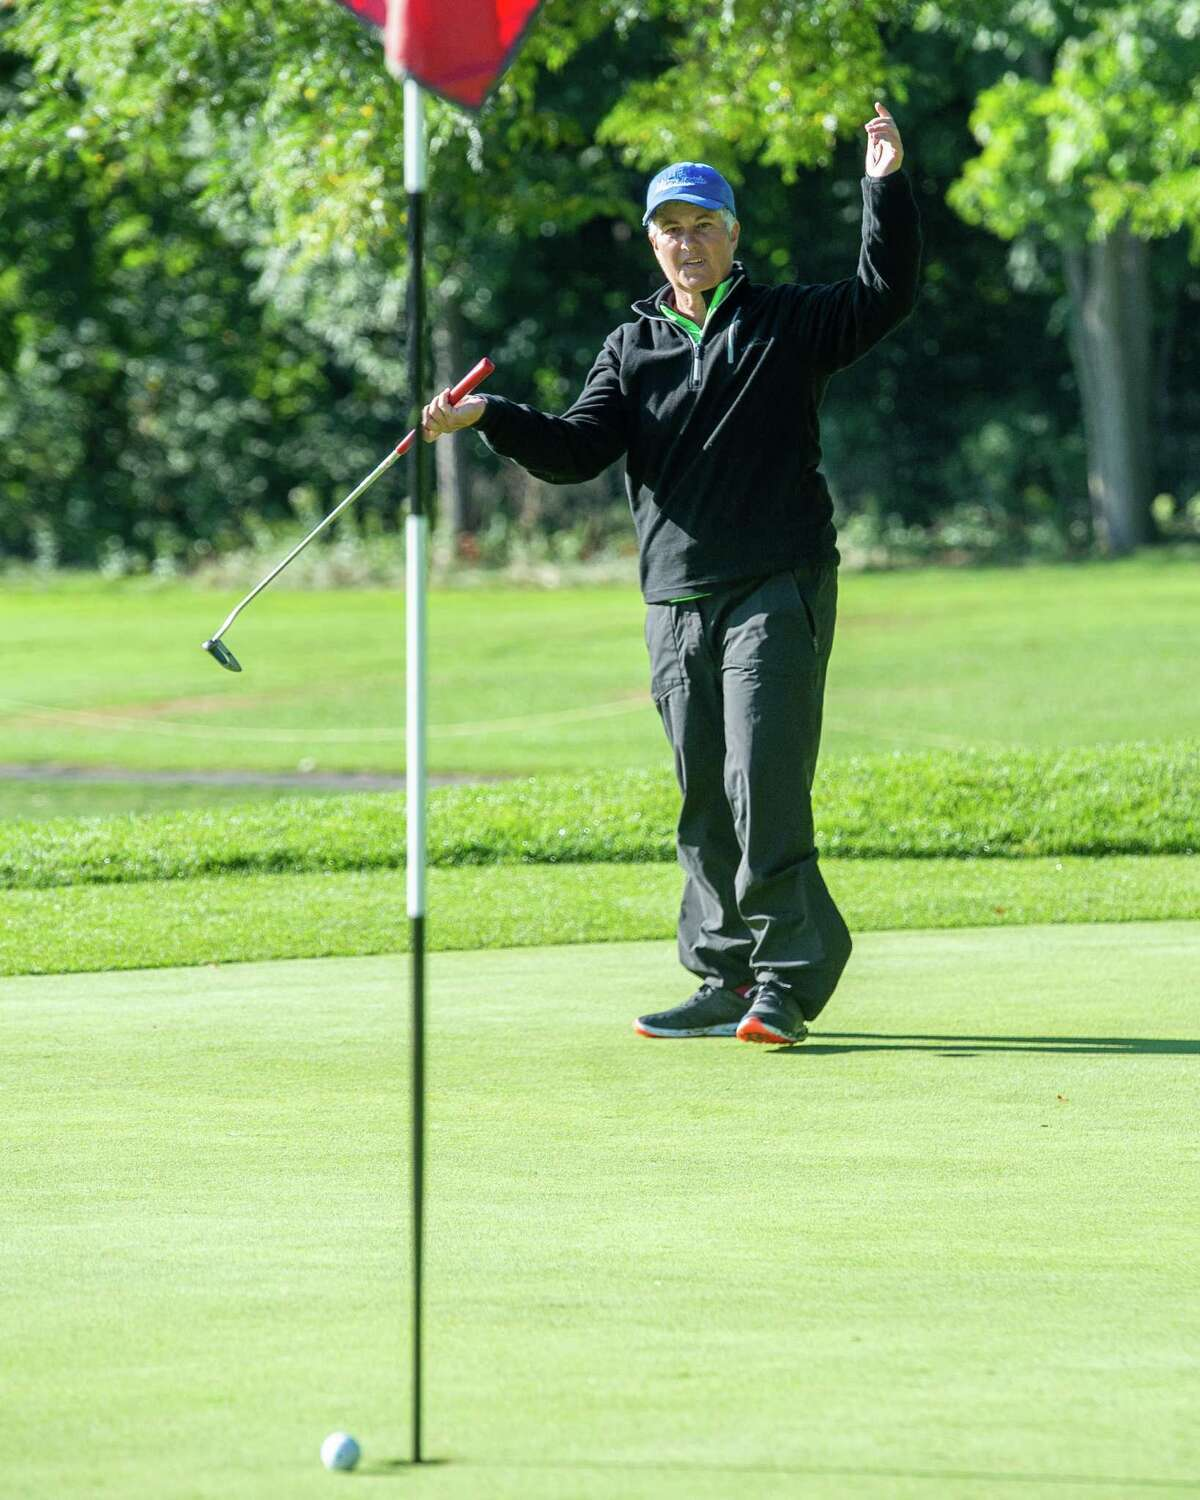 Patricia Mayne thought she had an eagle during the final round of the Schenectady County Womena€™s Classic, a two-day scratch event held at Schenectady Municipal Golf Course, on Saturday, Sept. 12, 2020 (Jim Franco/Special to the Times Union.)